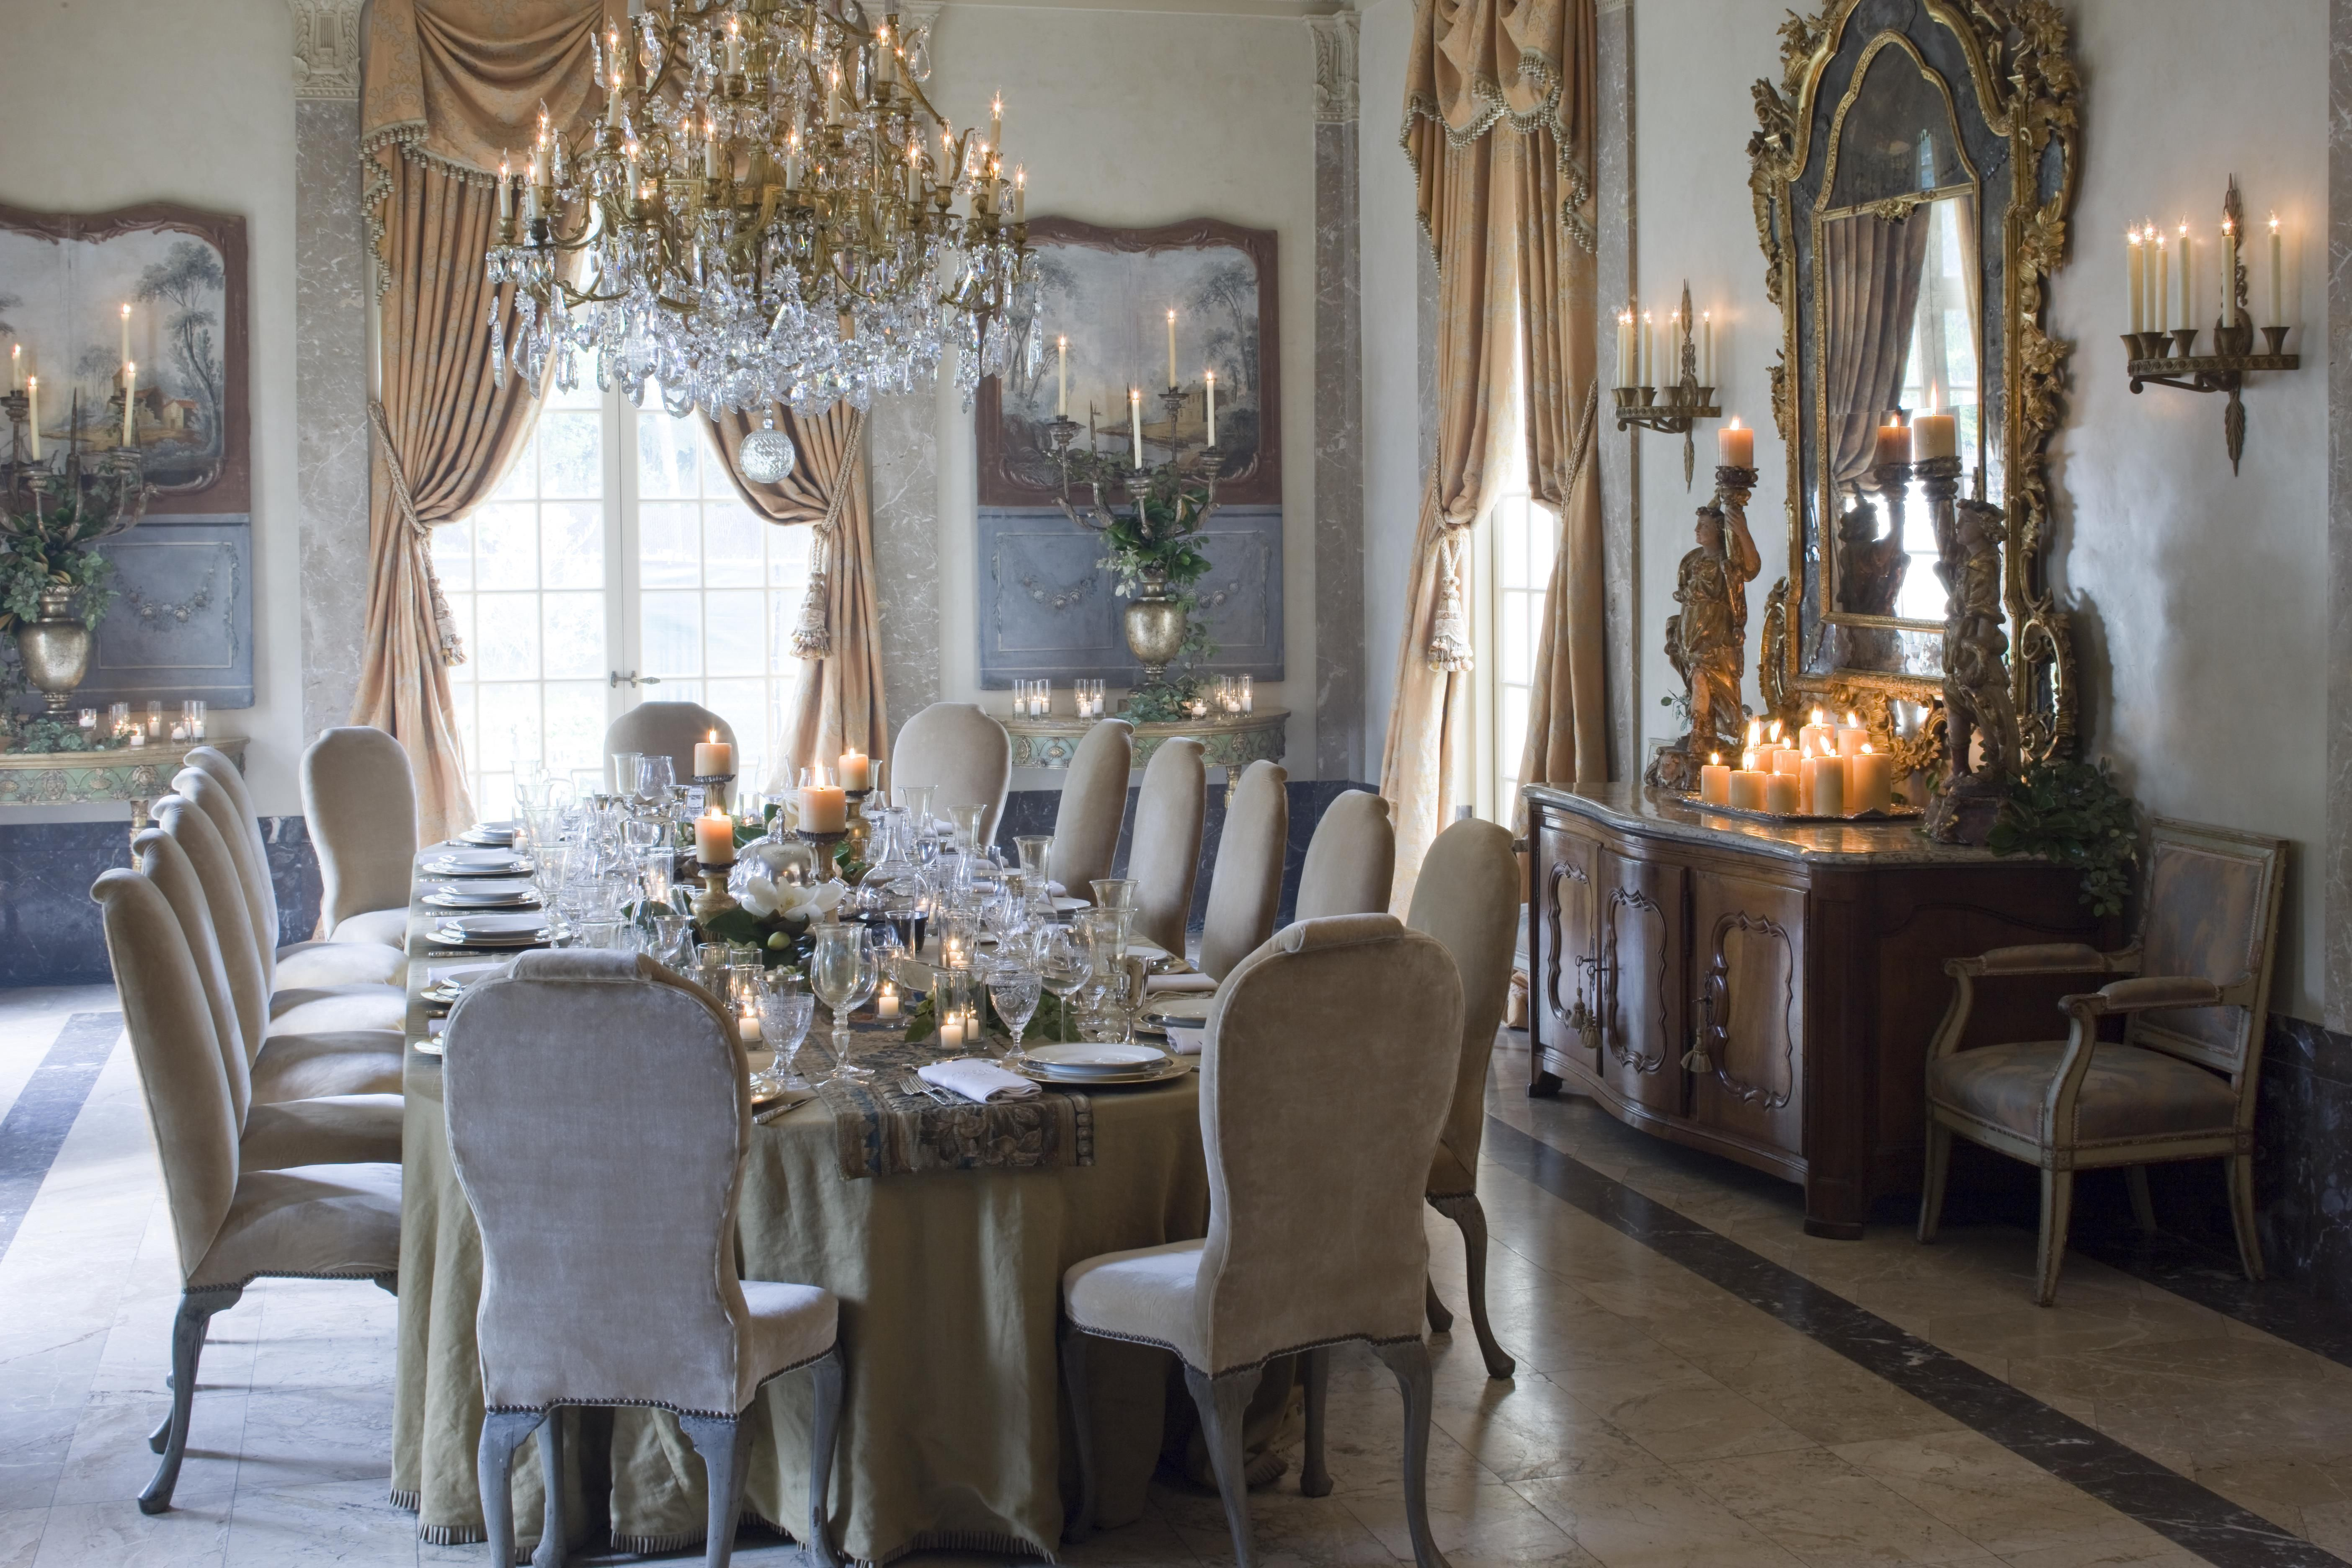 Pin By Matthew Scavone On Aesthetics Dining Room Dining Room